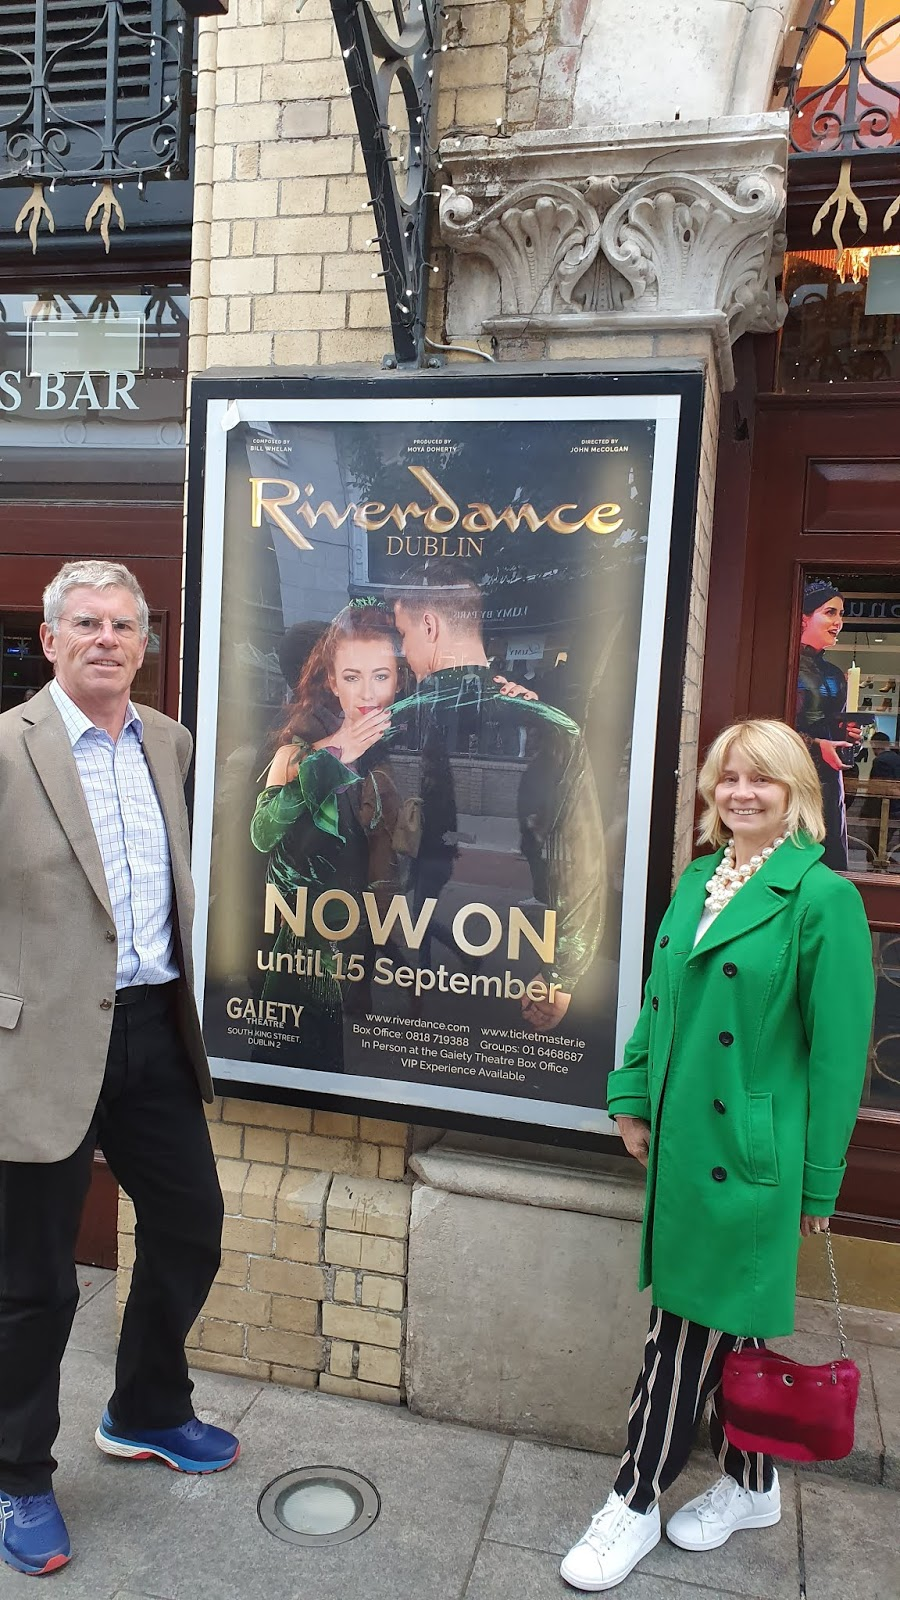 Fashion blogger Gail Hanlon and husband outside the Gaiety Theatre in Dublin for a performance of Riverdance